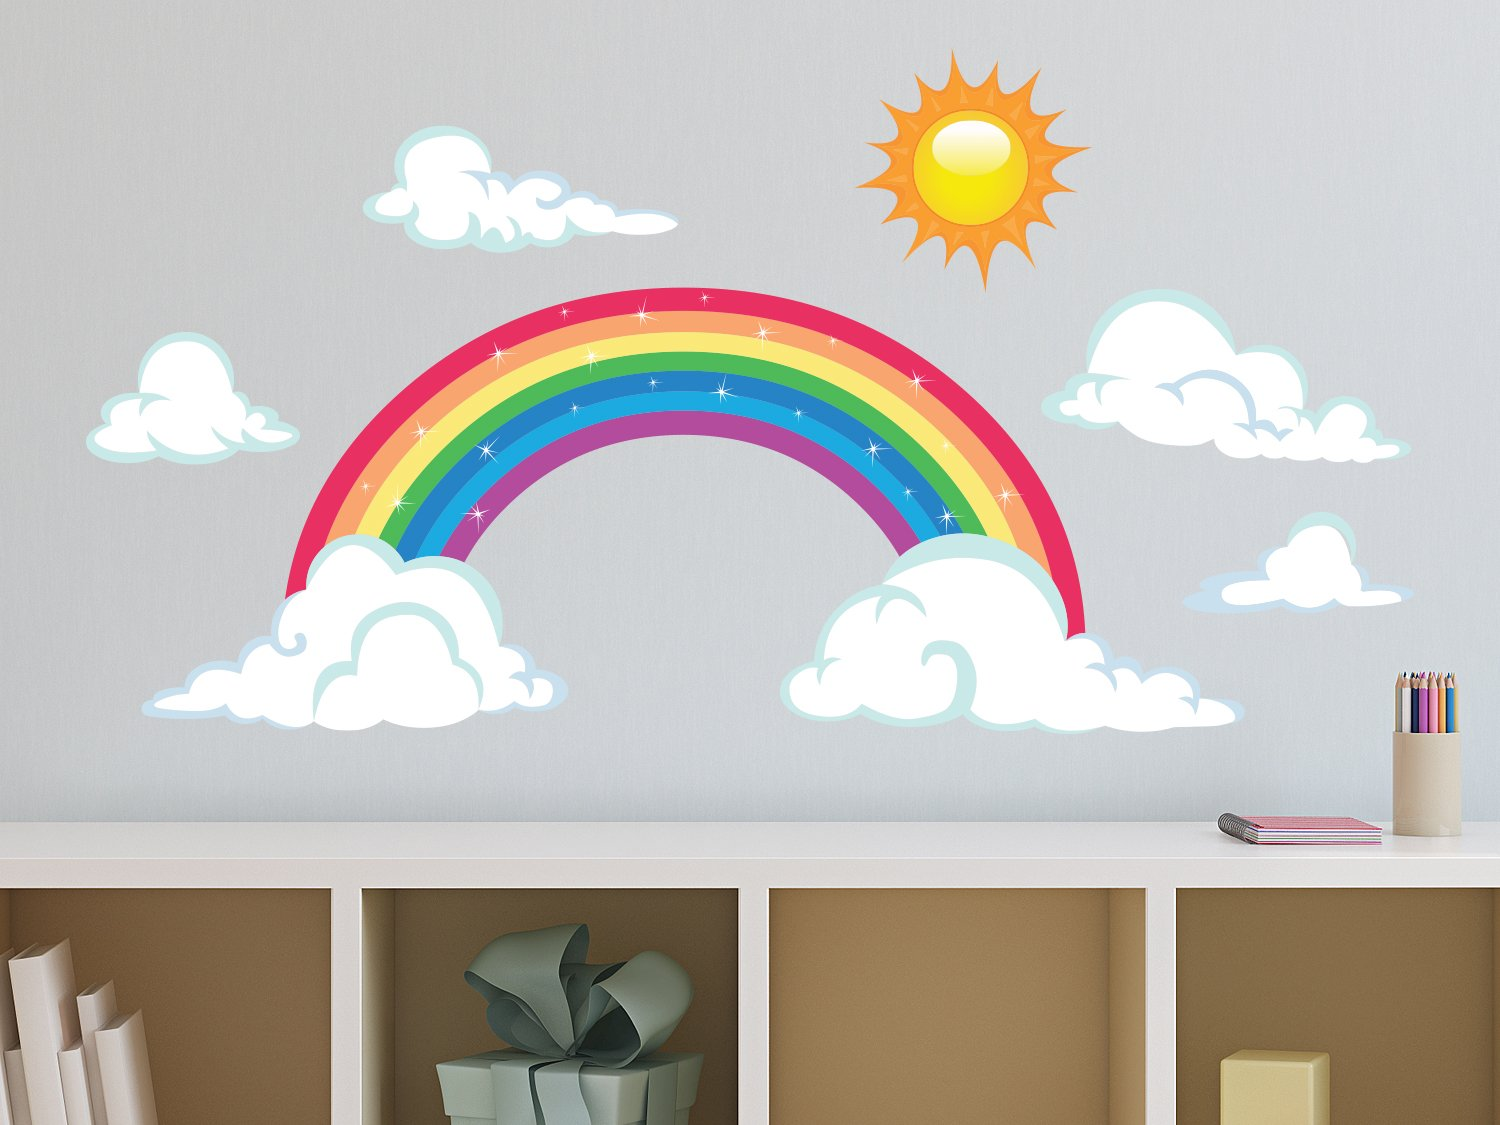 Sparkling Rainbow Fabric Wall Decal with Sun and Clouds, Two Size Options, Size Large by Sunny Decals (Image #1)